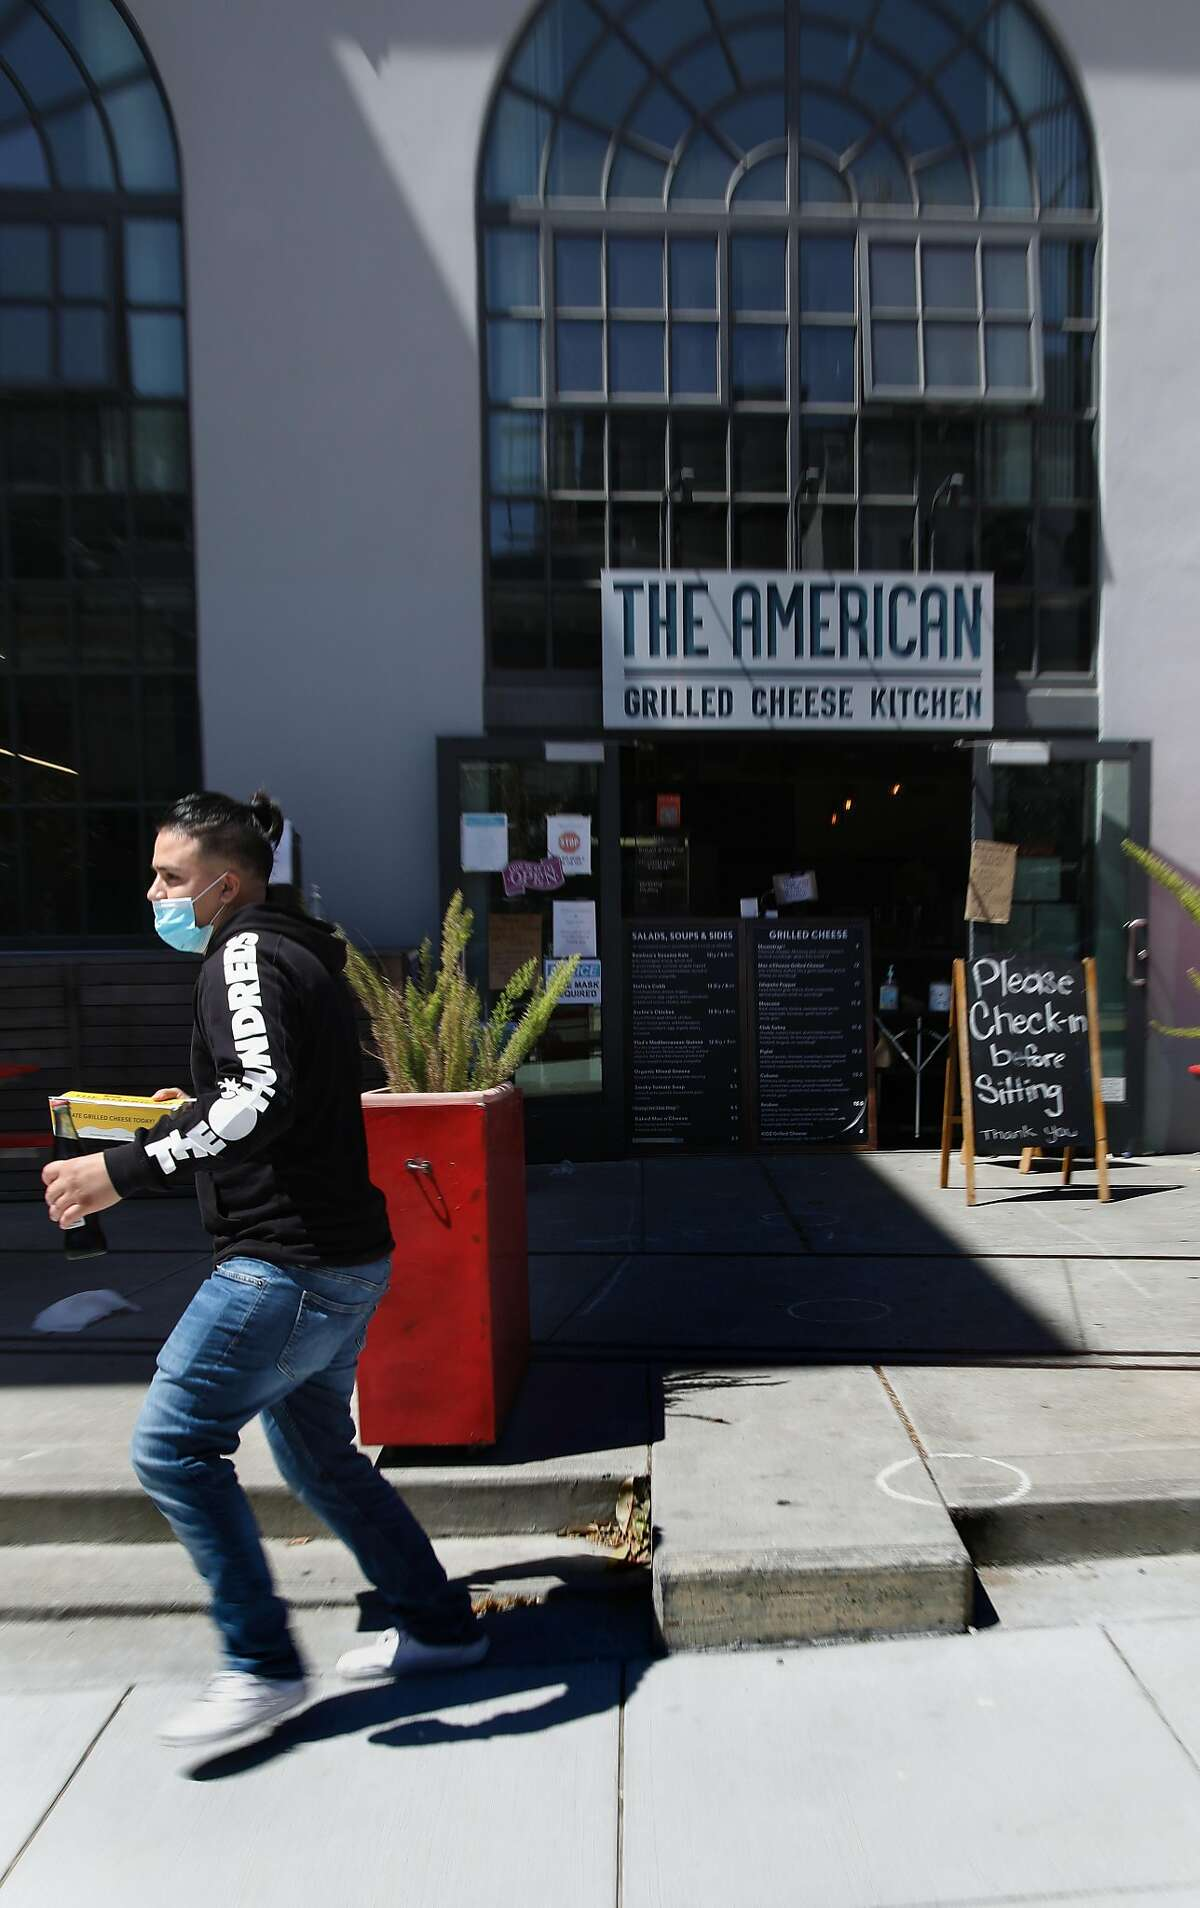 A customer picks up an order at The American Grilled Cheese Kitchen on Tuesday, July 7, 2020, in San Francisco, Calif. Mayor London Breed may announce a change of plans on indoor dining in SF.